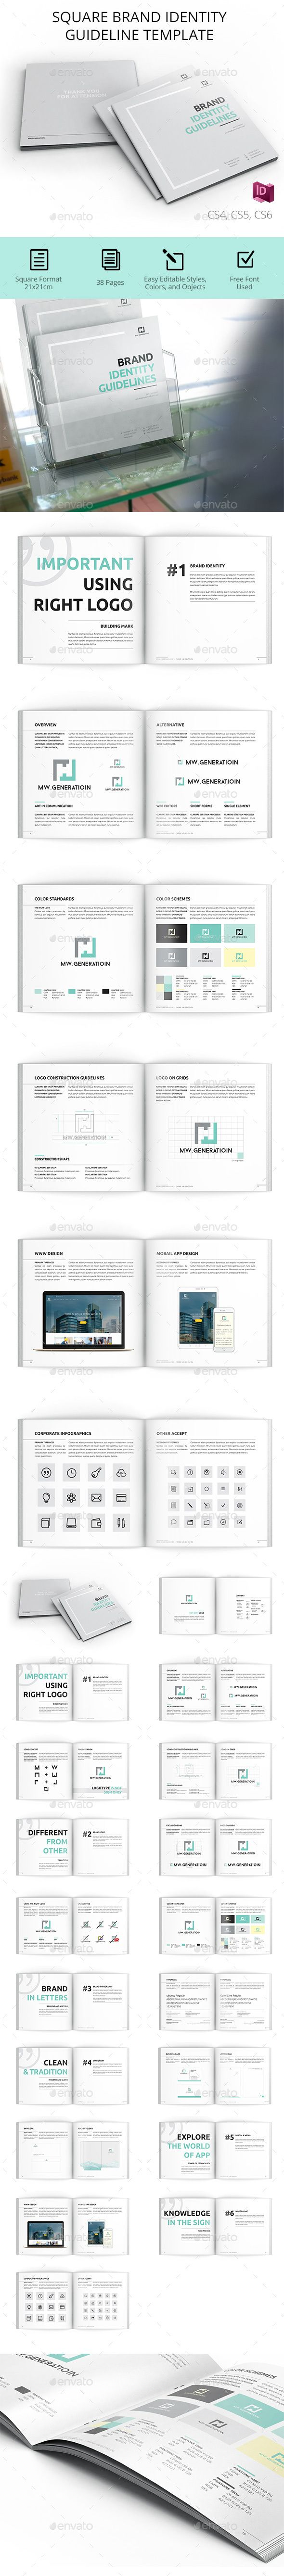 Best 25 Manual ideas – It Manual Templates to Download